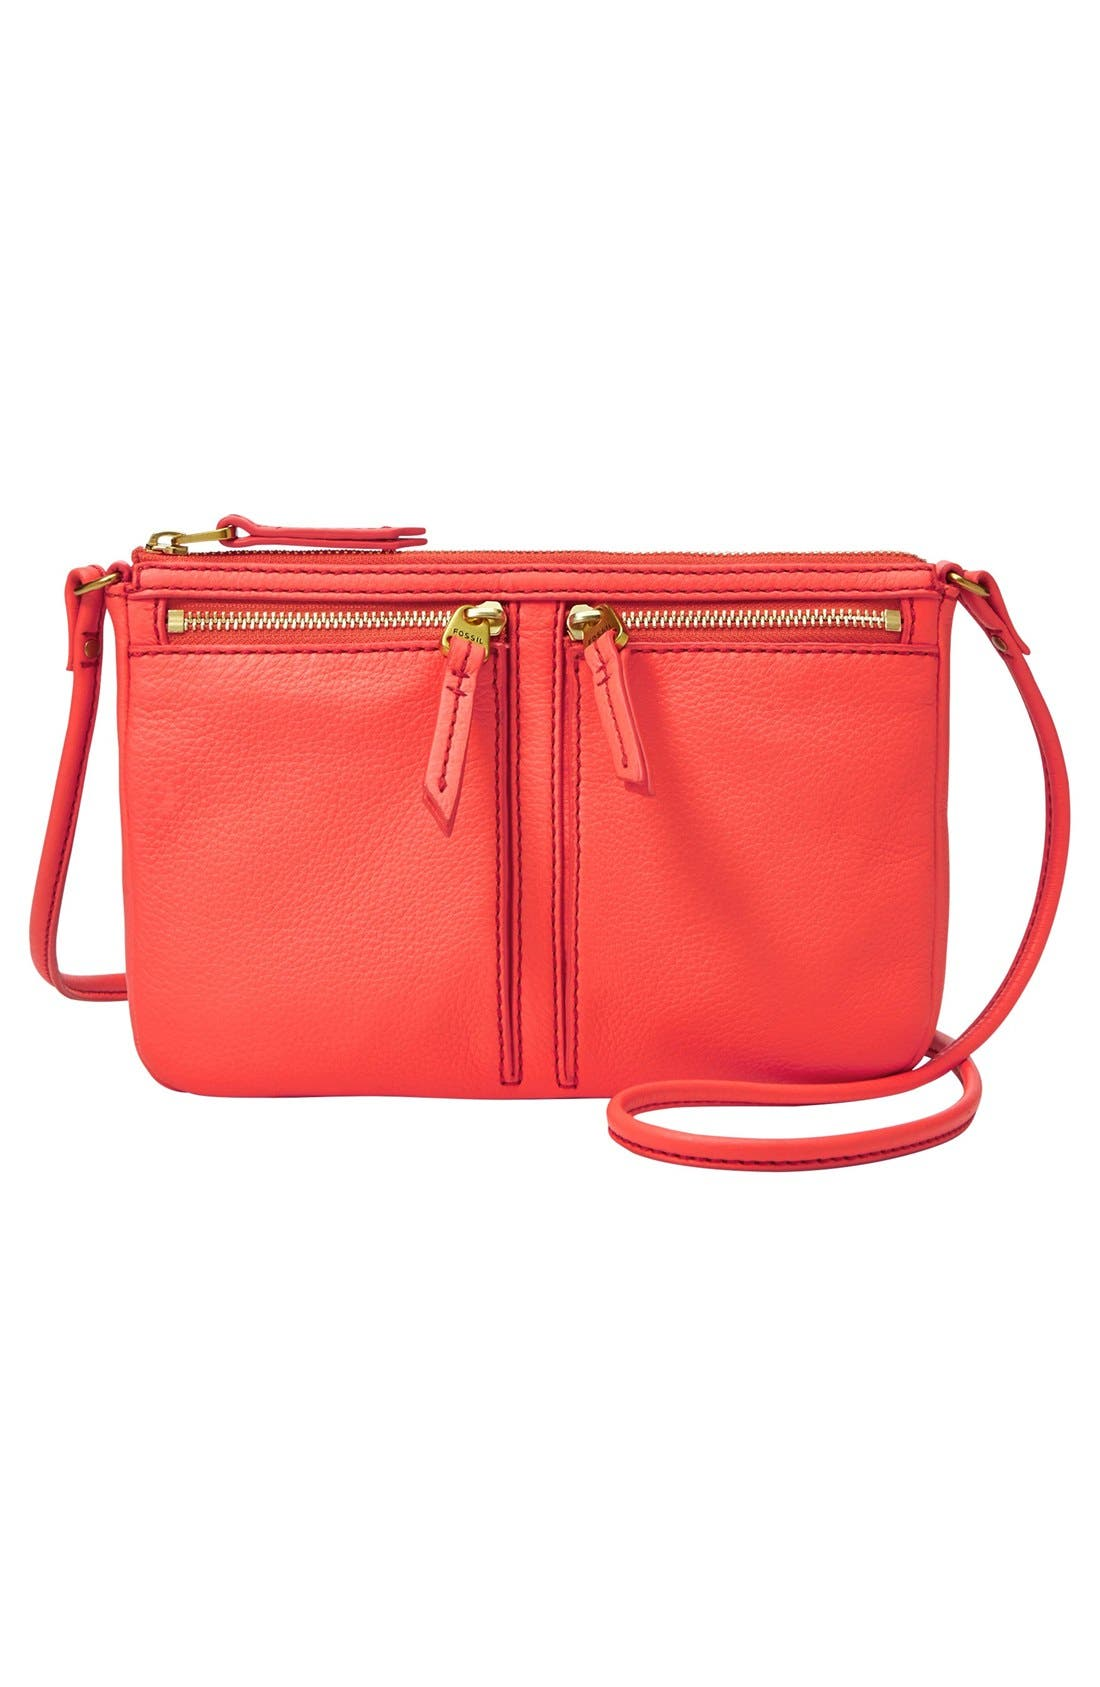 Main Image - Fossil 'Small Erin' Crossbody Bag